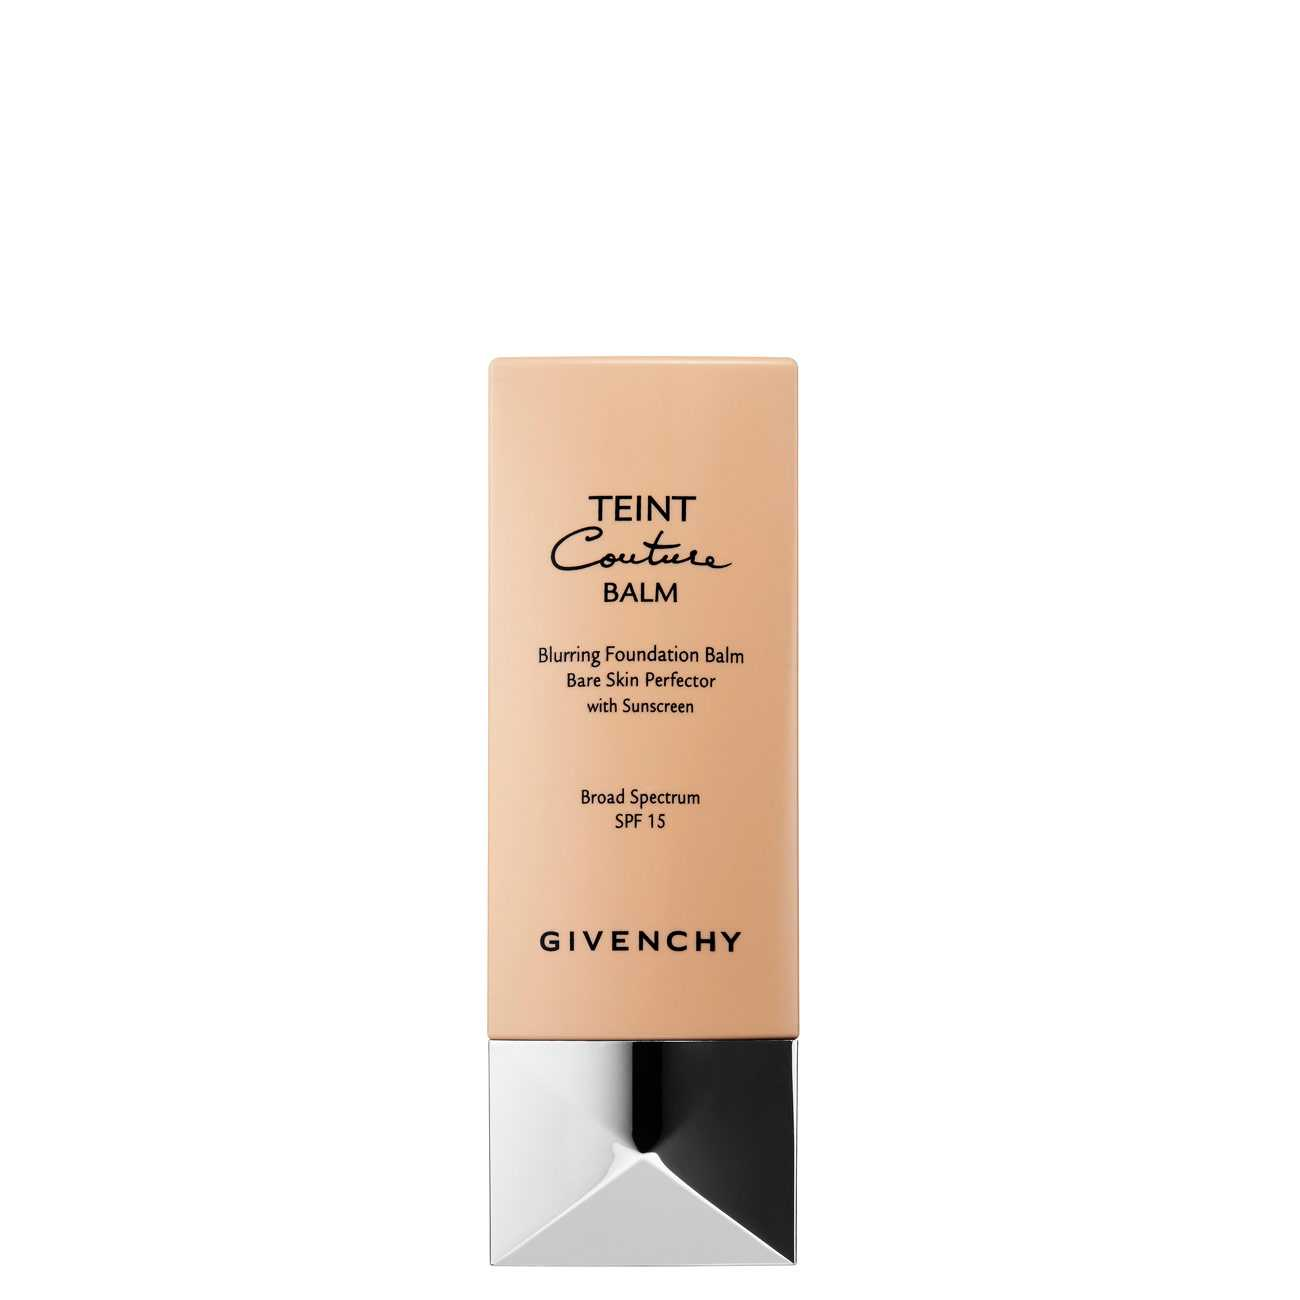 TEINT COUTURE BALM 30 ML Nude Gold N6